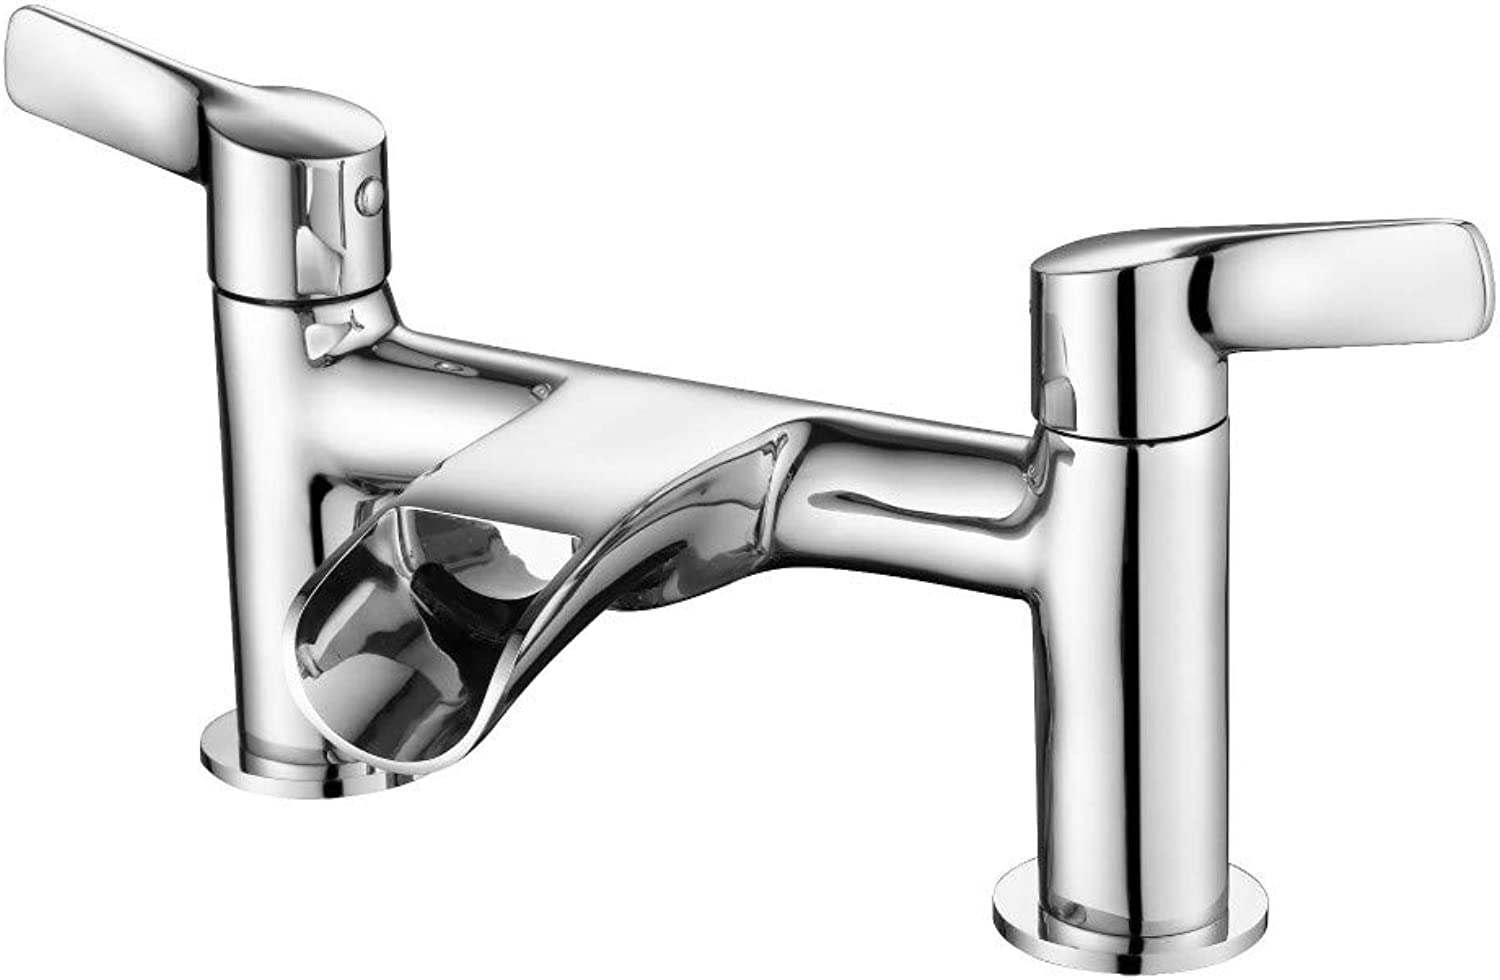 Bathroom Sink Taps Faucet Basin Faucet,Waterfall Water Double Double Open Hot and Cold Water Basin Faucet